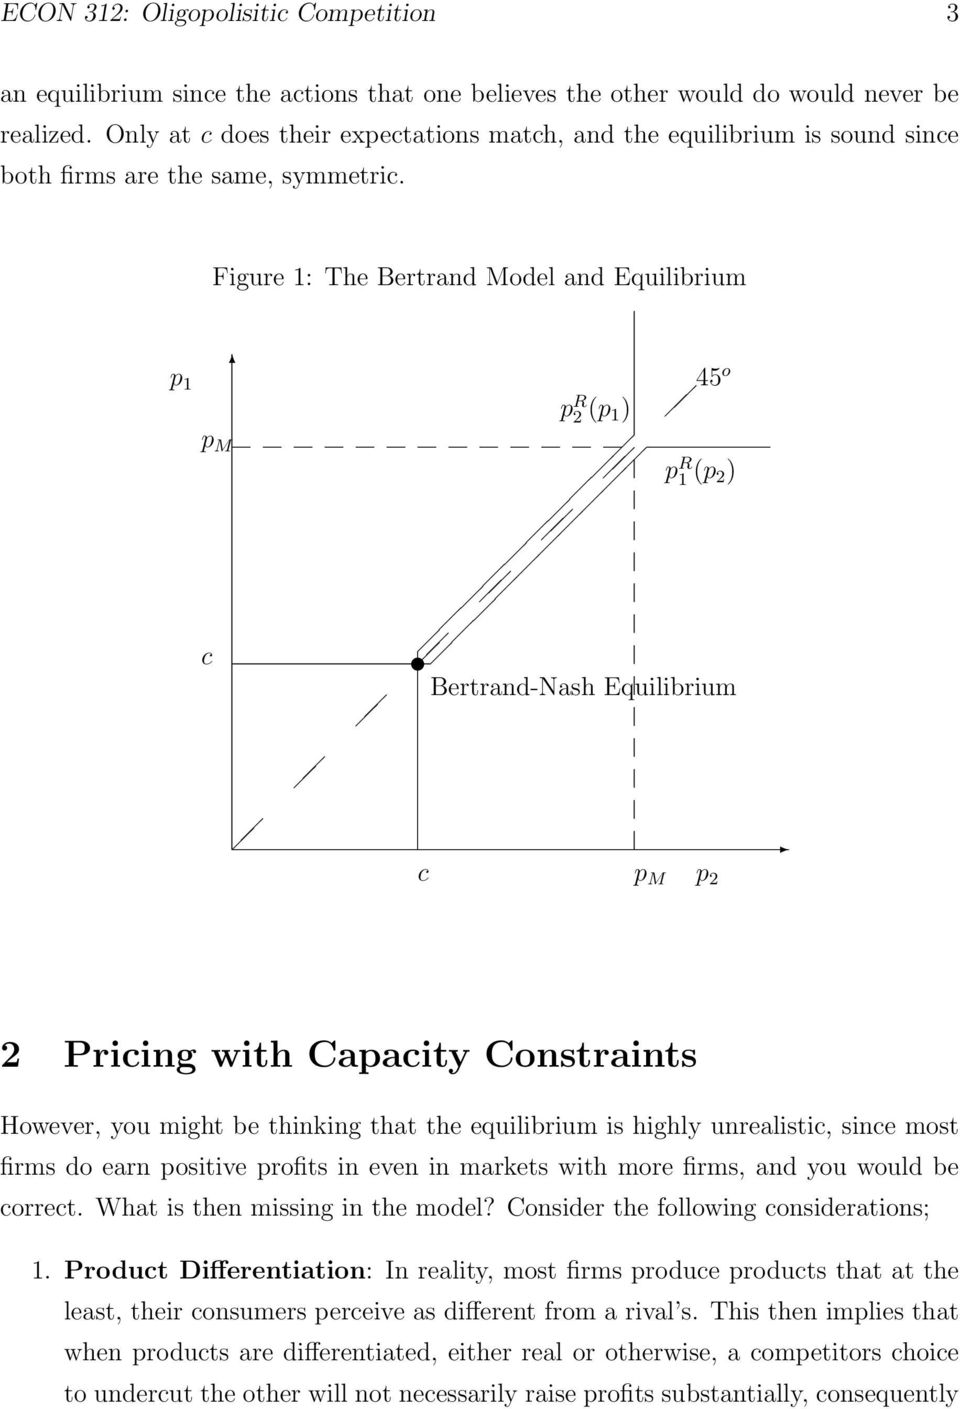 Figure 1: The Bertrand Model and Equilibrium p 1 p R 2 (p 1 ) 45 o p M c p R 1 (p 2 ) Bertrand-Nash Equilibrium c p M p 2 2 Pricing with Capacity Constraints However, you might be thinking that the